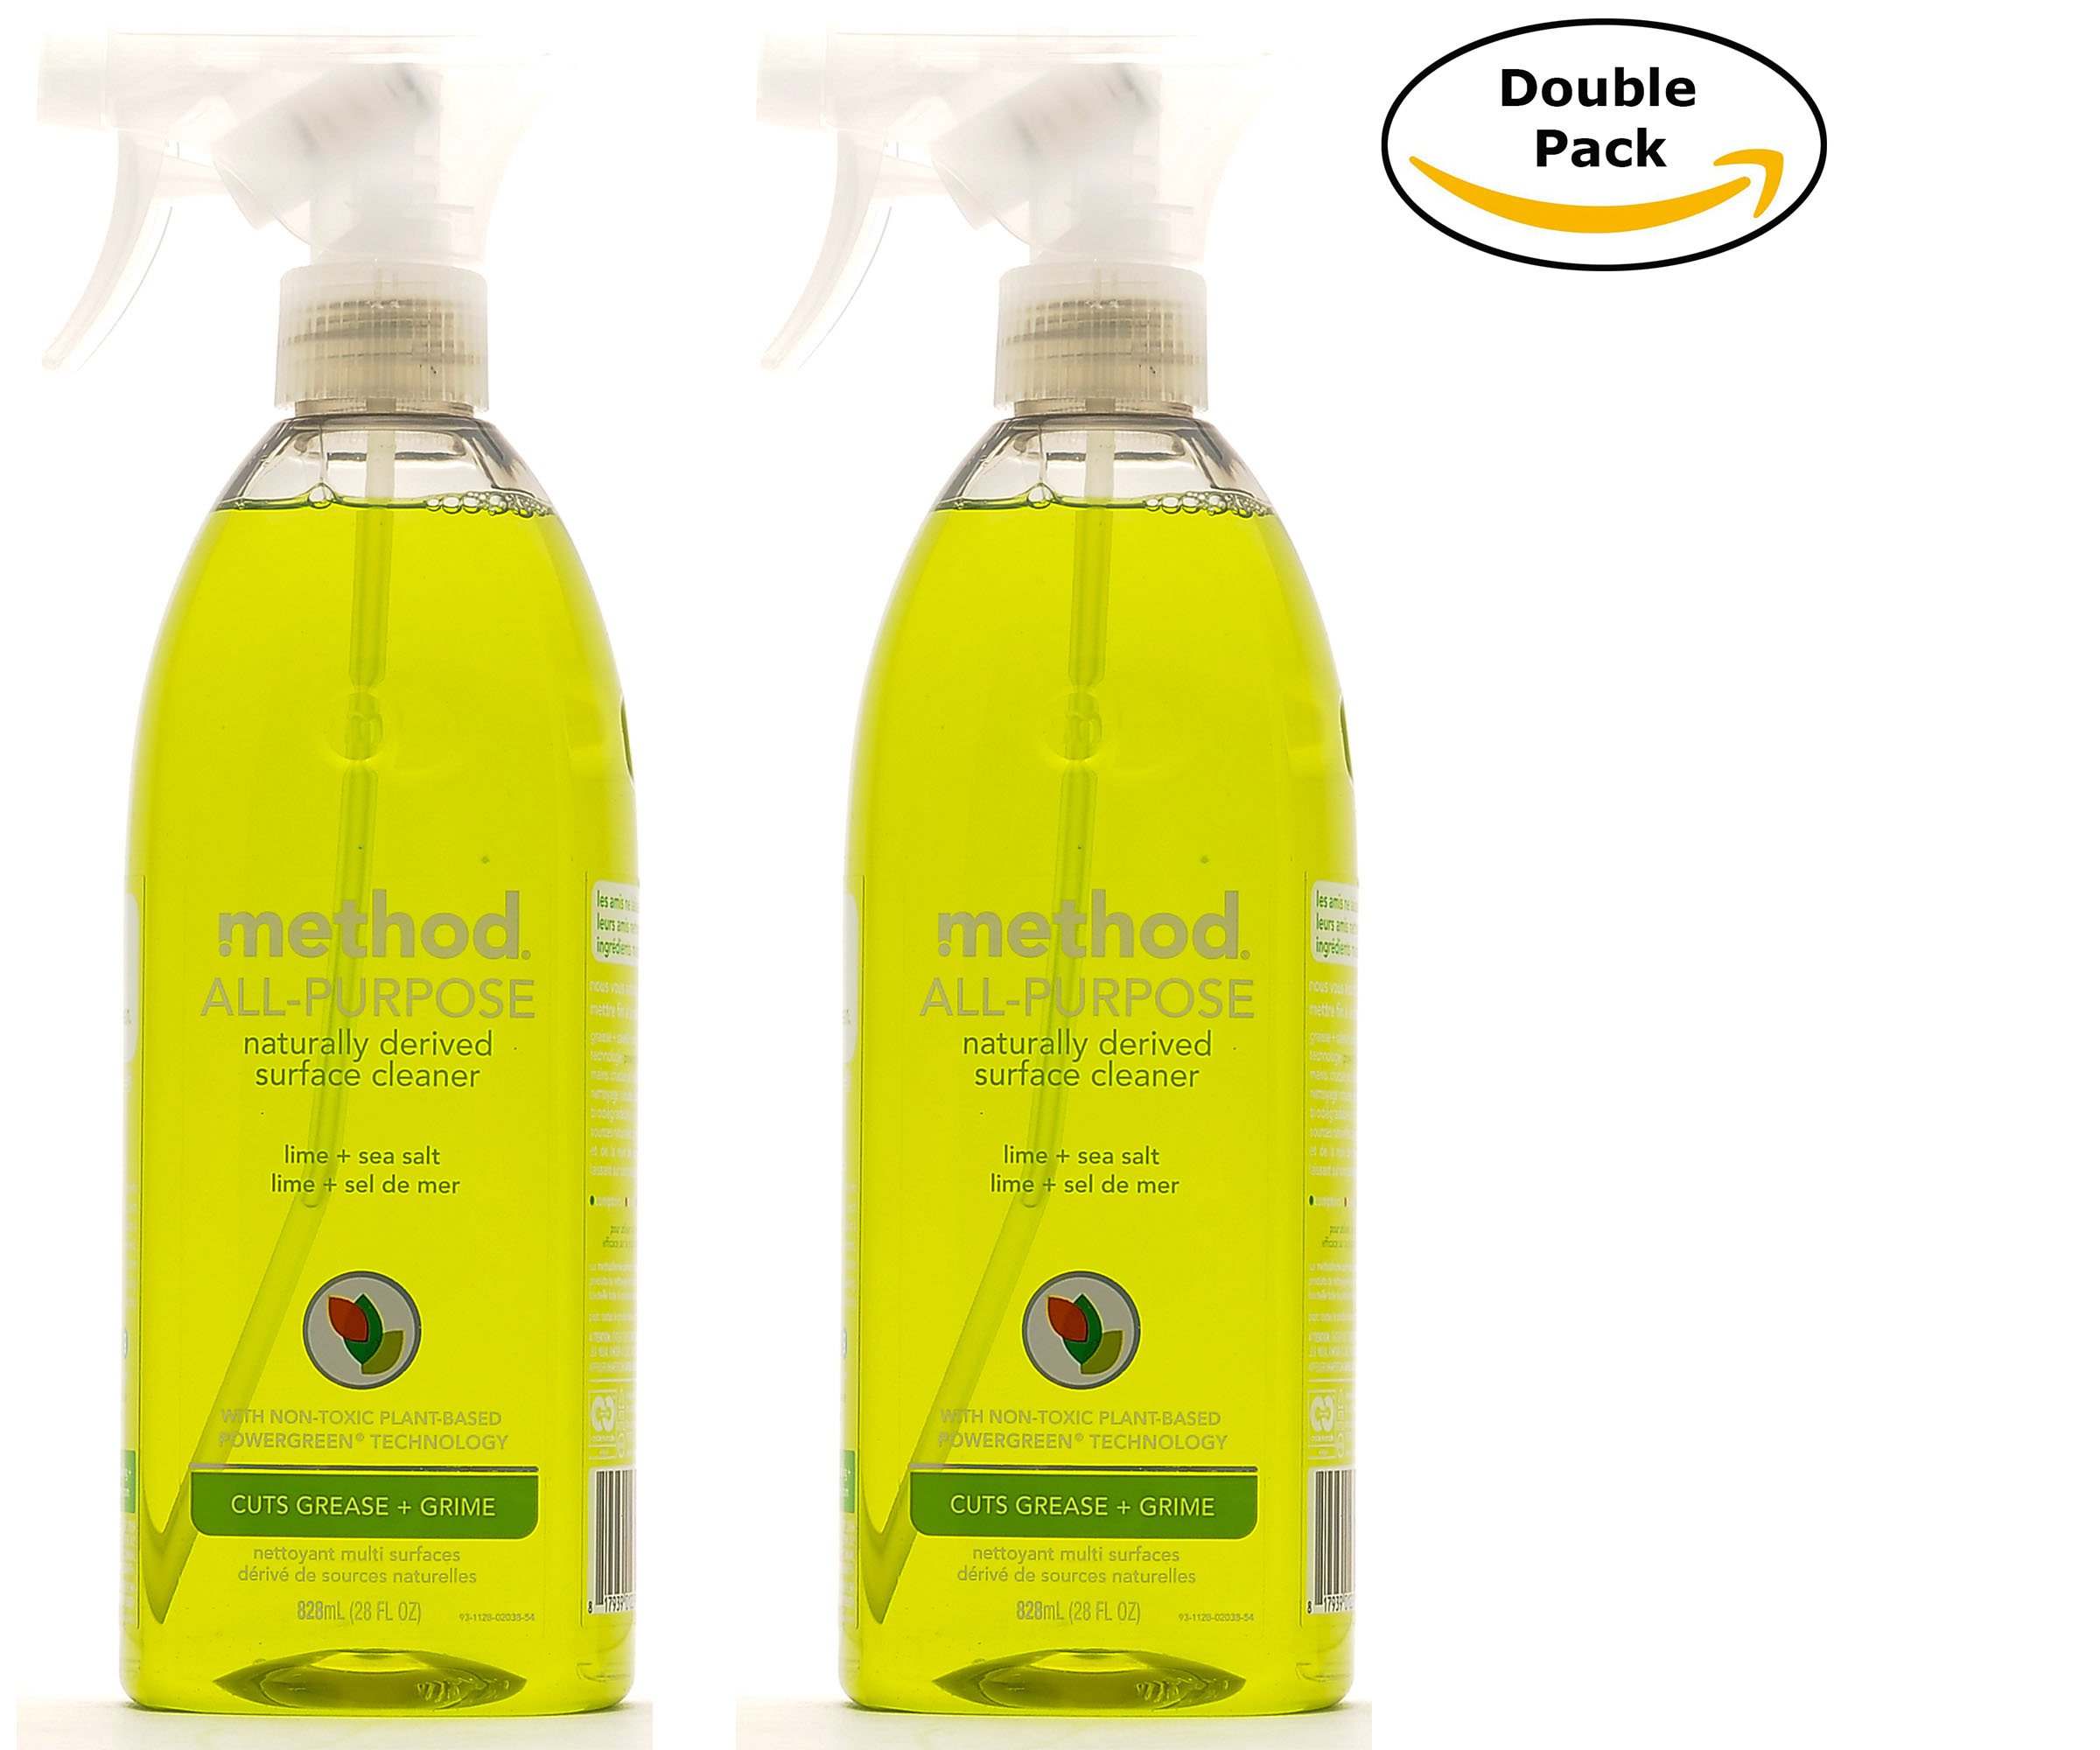 Method Naturally Derived All Purpose Cleaner Spray Bottles, Lime + Sea Salt, 28 FL Oz Twin Pack (28 x 2, Total 56 Oz)